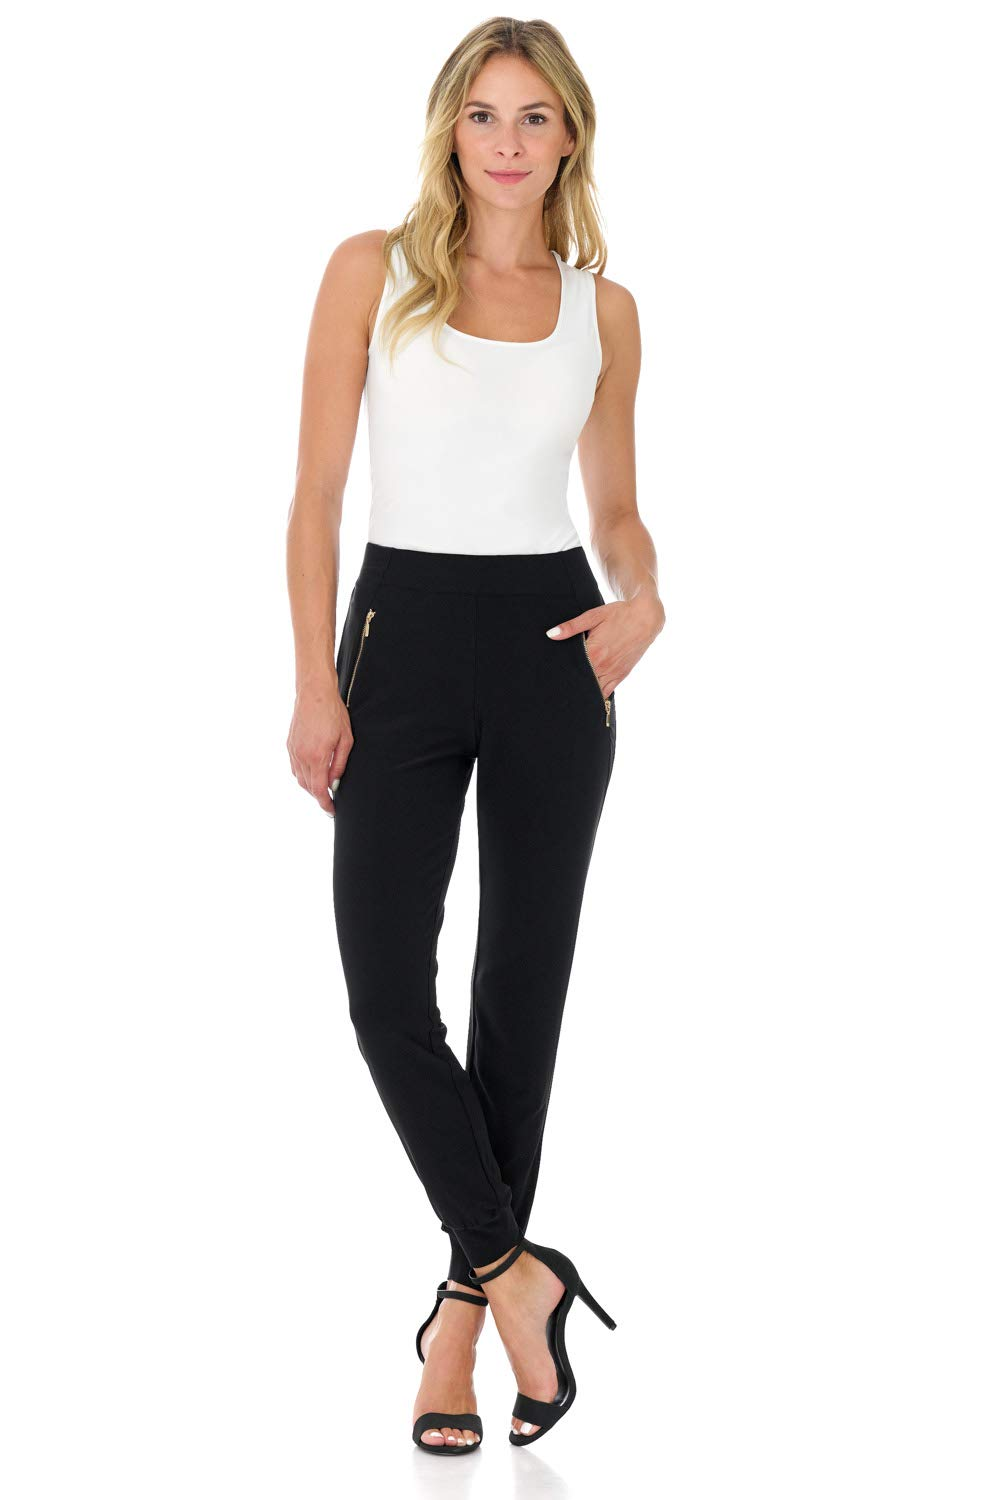 a2079983eb2 Rekucci Travel in Style - Women s Soft Chic Pant with Zipper Pockets  (Medium